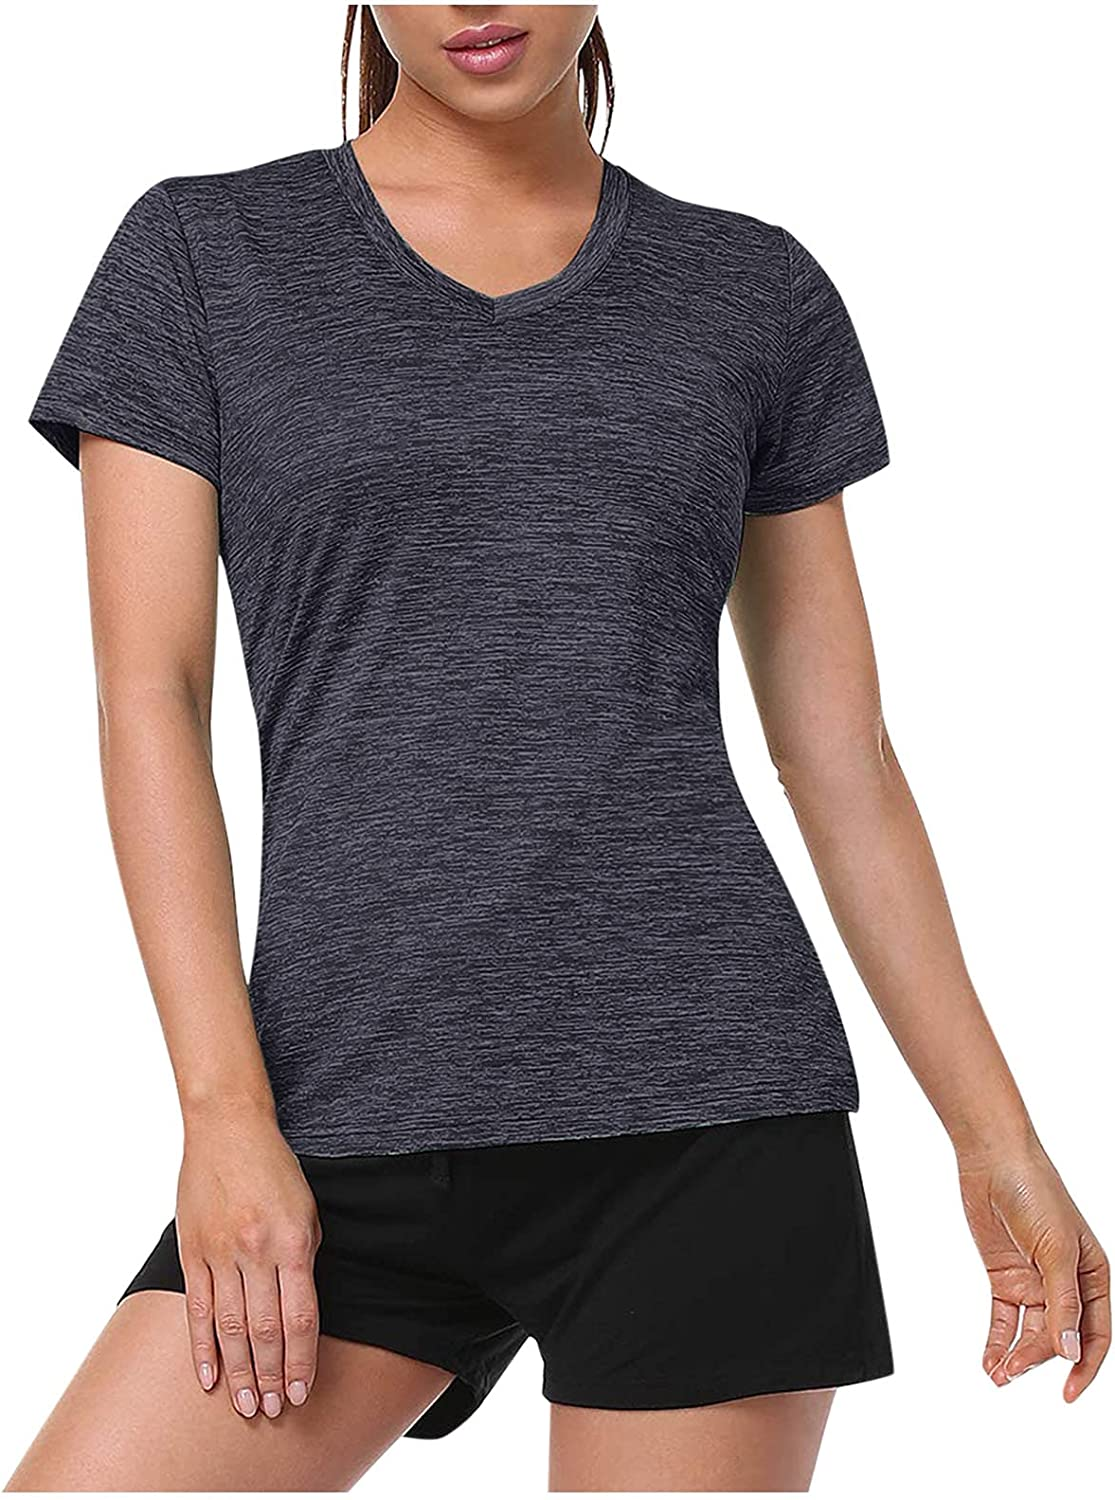 Max 84% OFF Women's V Neck Popular products T Shirt Short Sleeve Moisture Sh Athletic Wicking